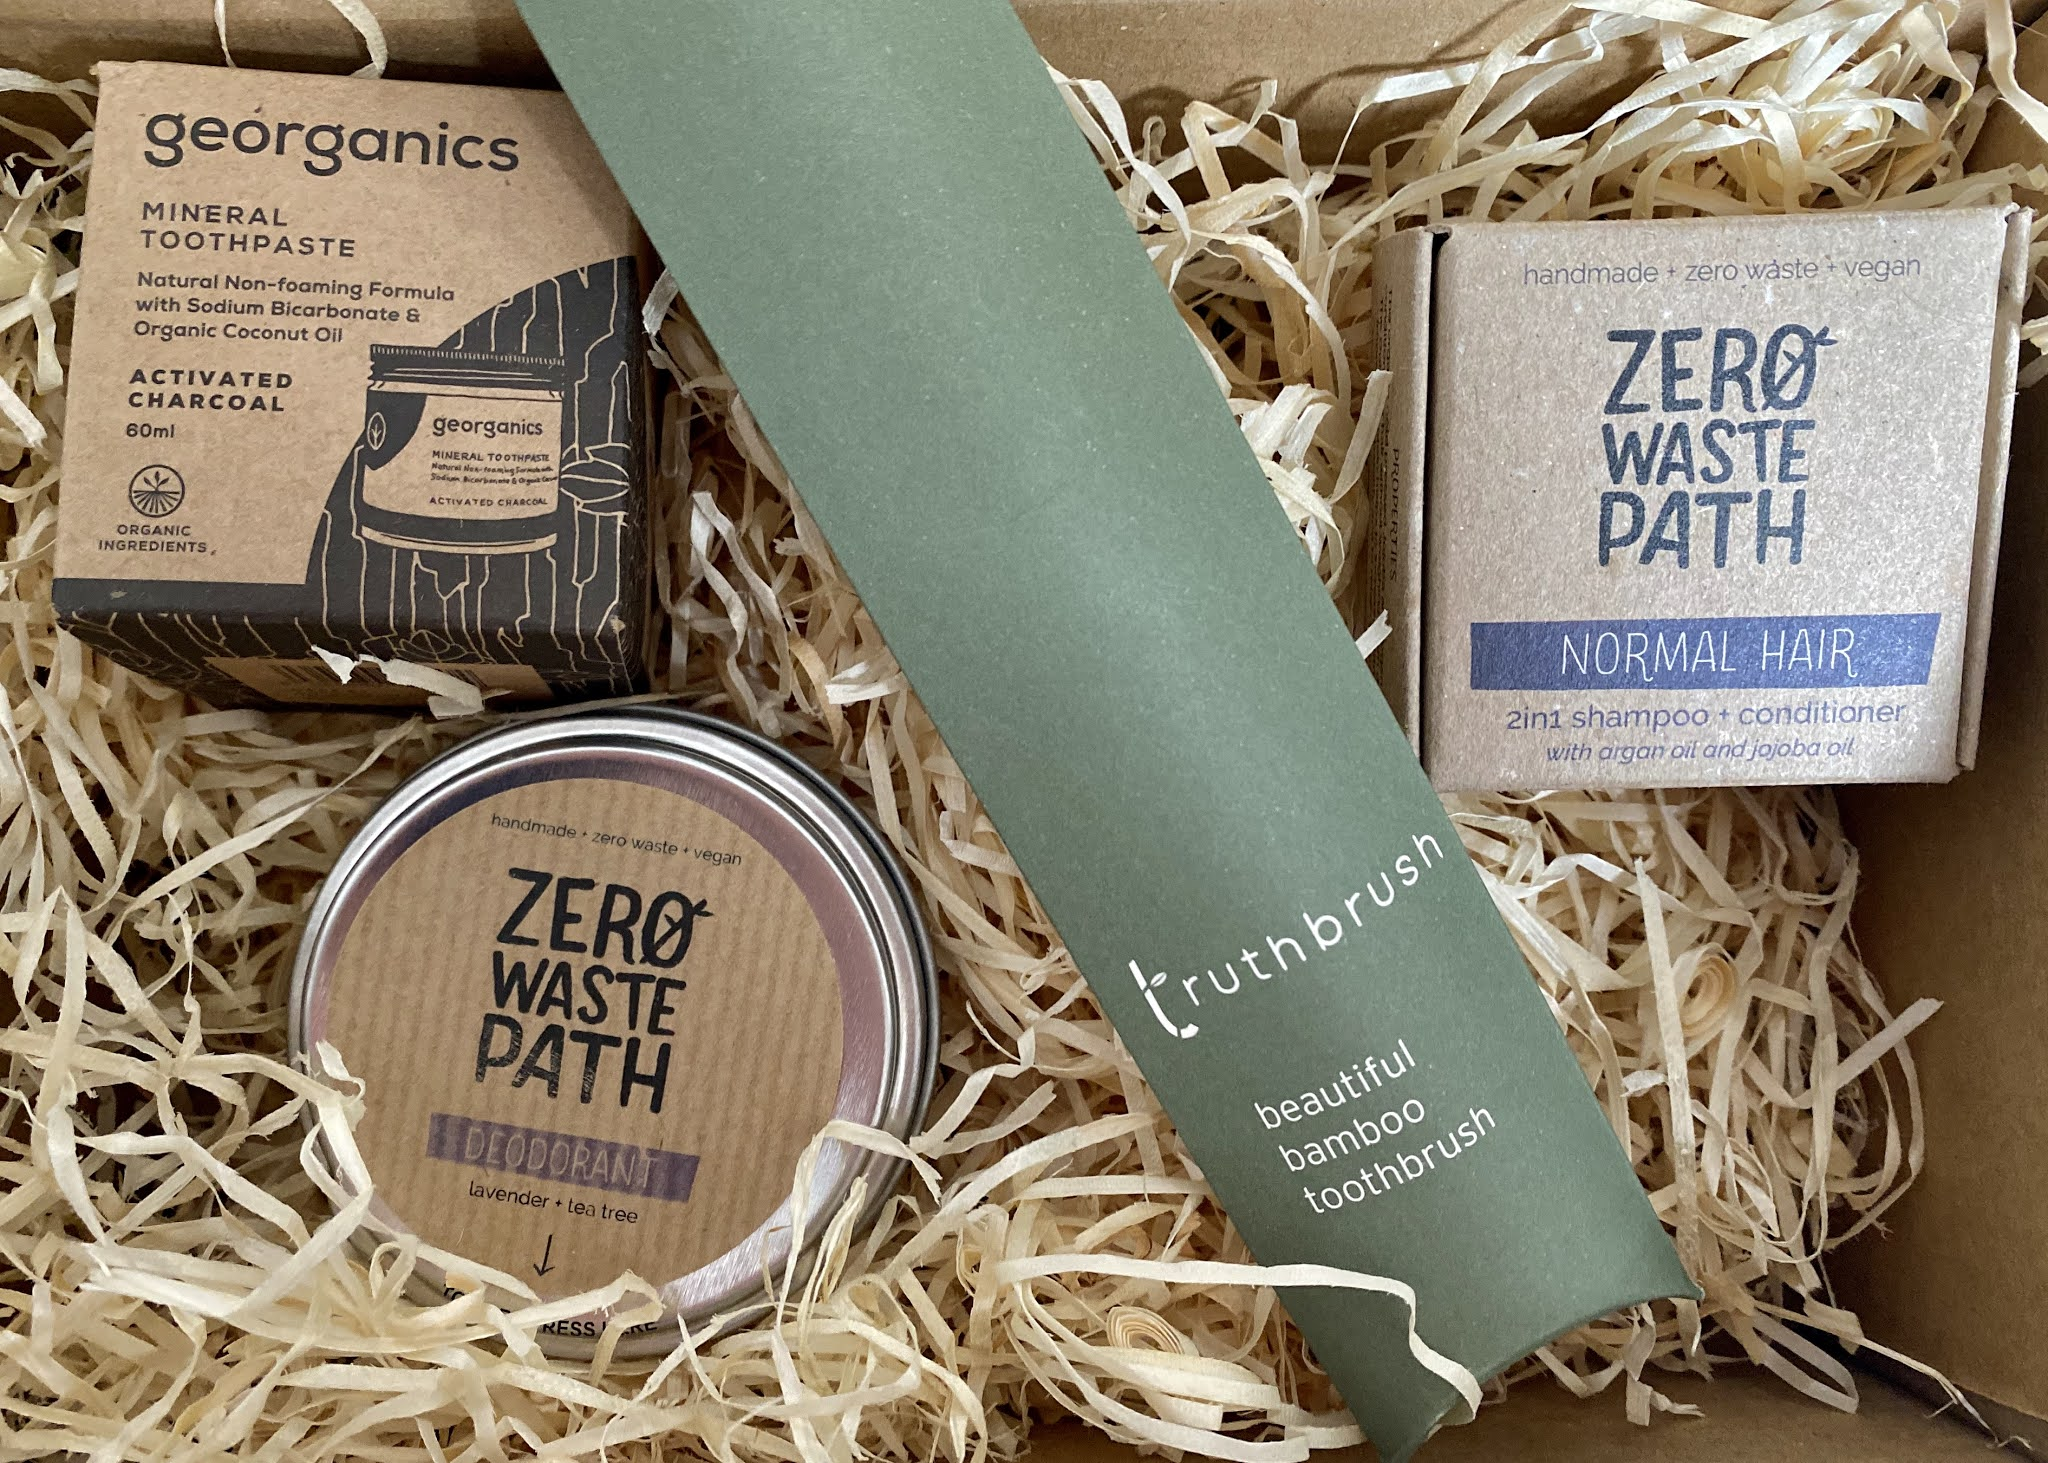 A delivery of eco products for the bathroom: a deodorant tin, jar of toothpaste, bamboo toothbrush and shampoo bar. All in their packaging